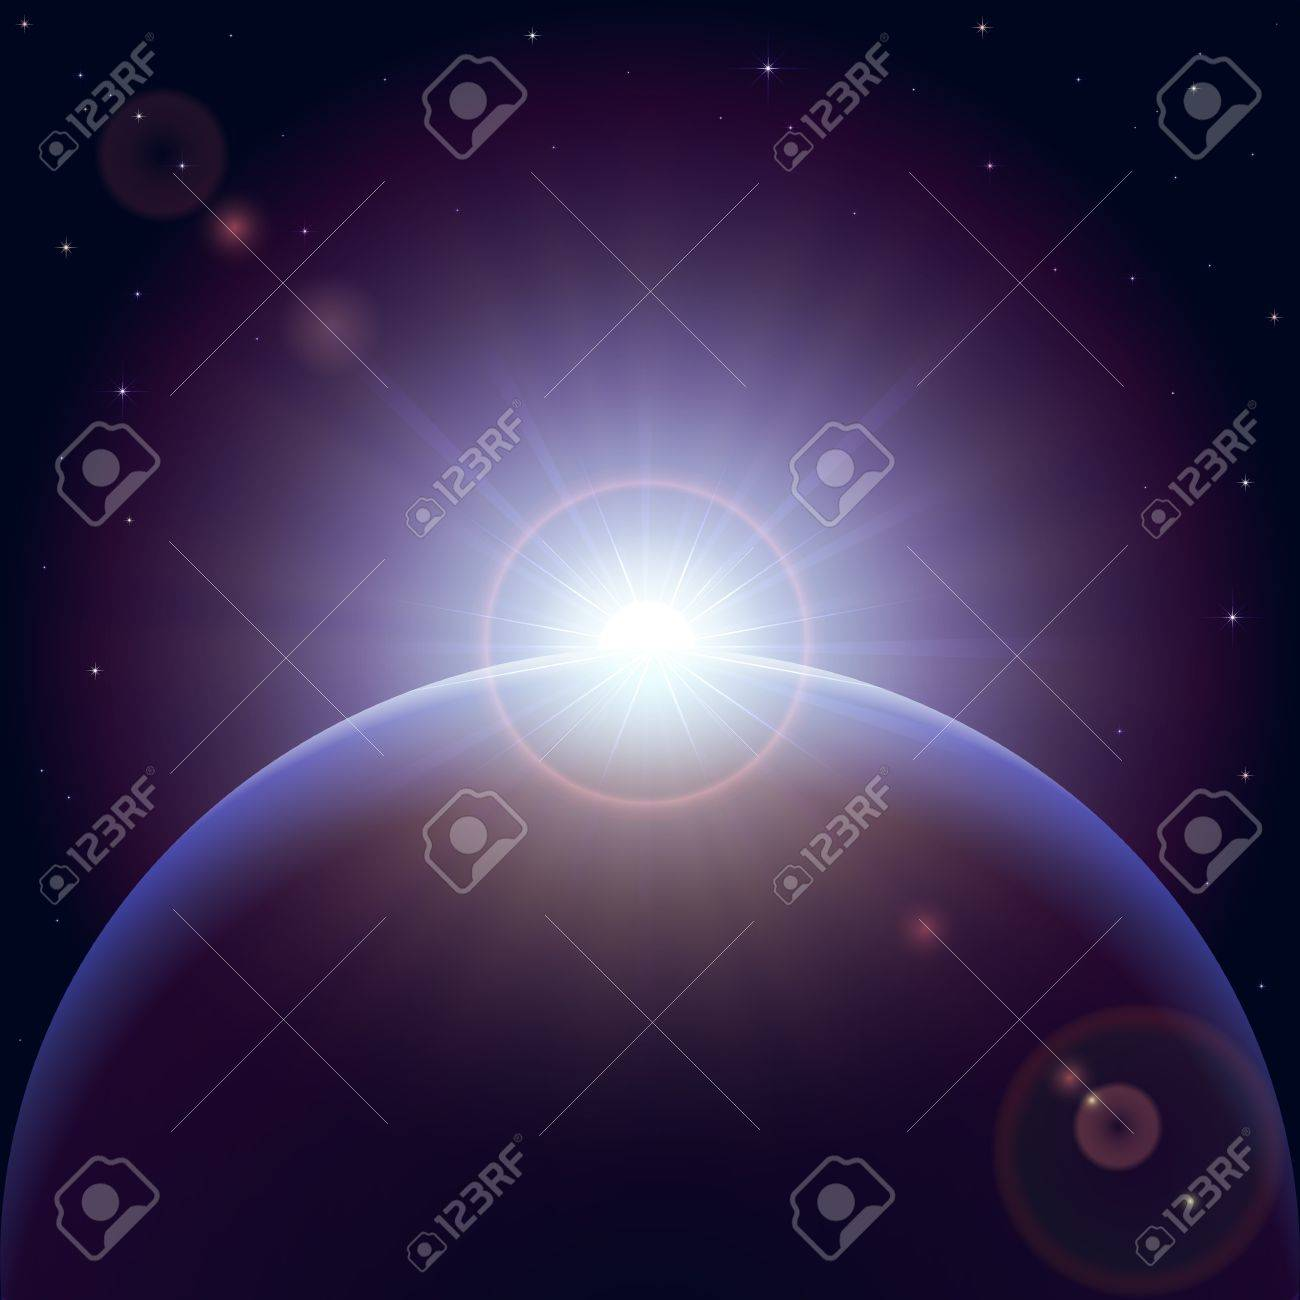 Space background with planet and shining sun, illustration. Stock Vector - 12803078